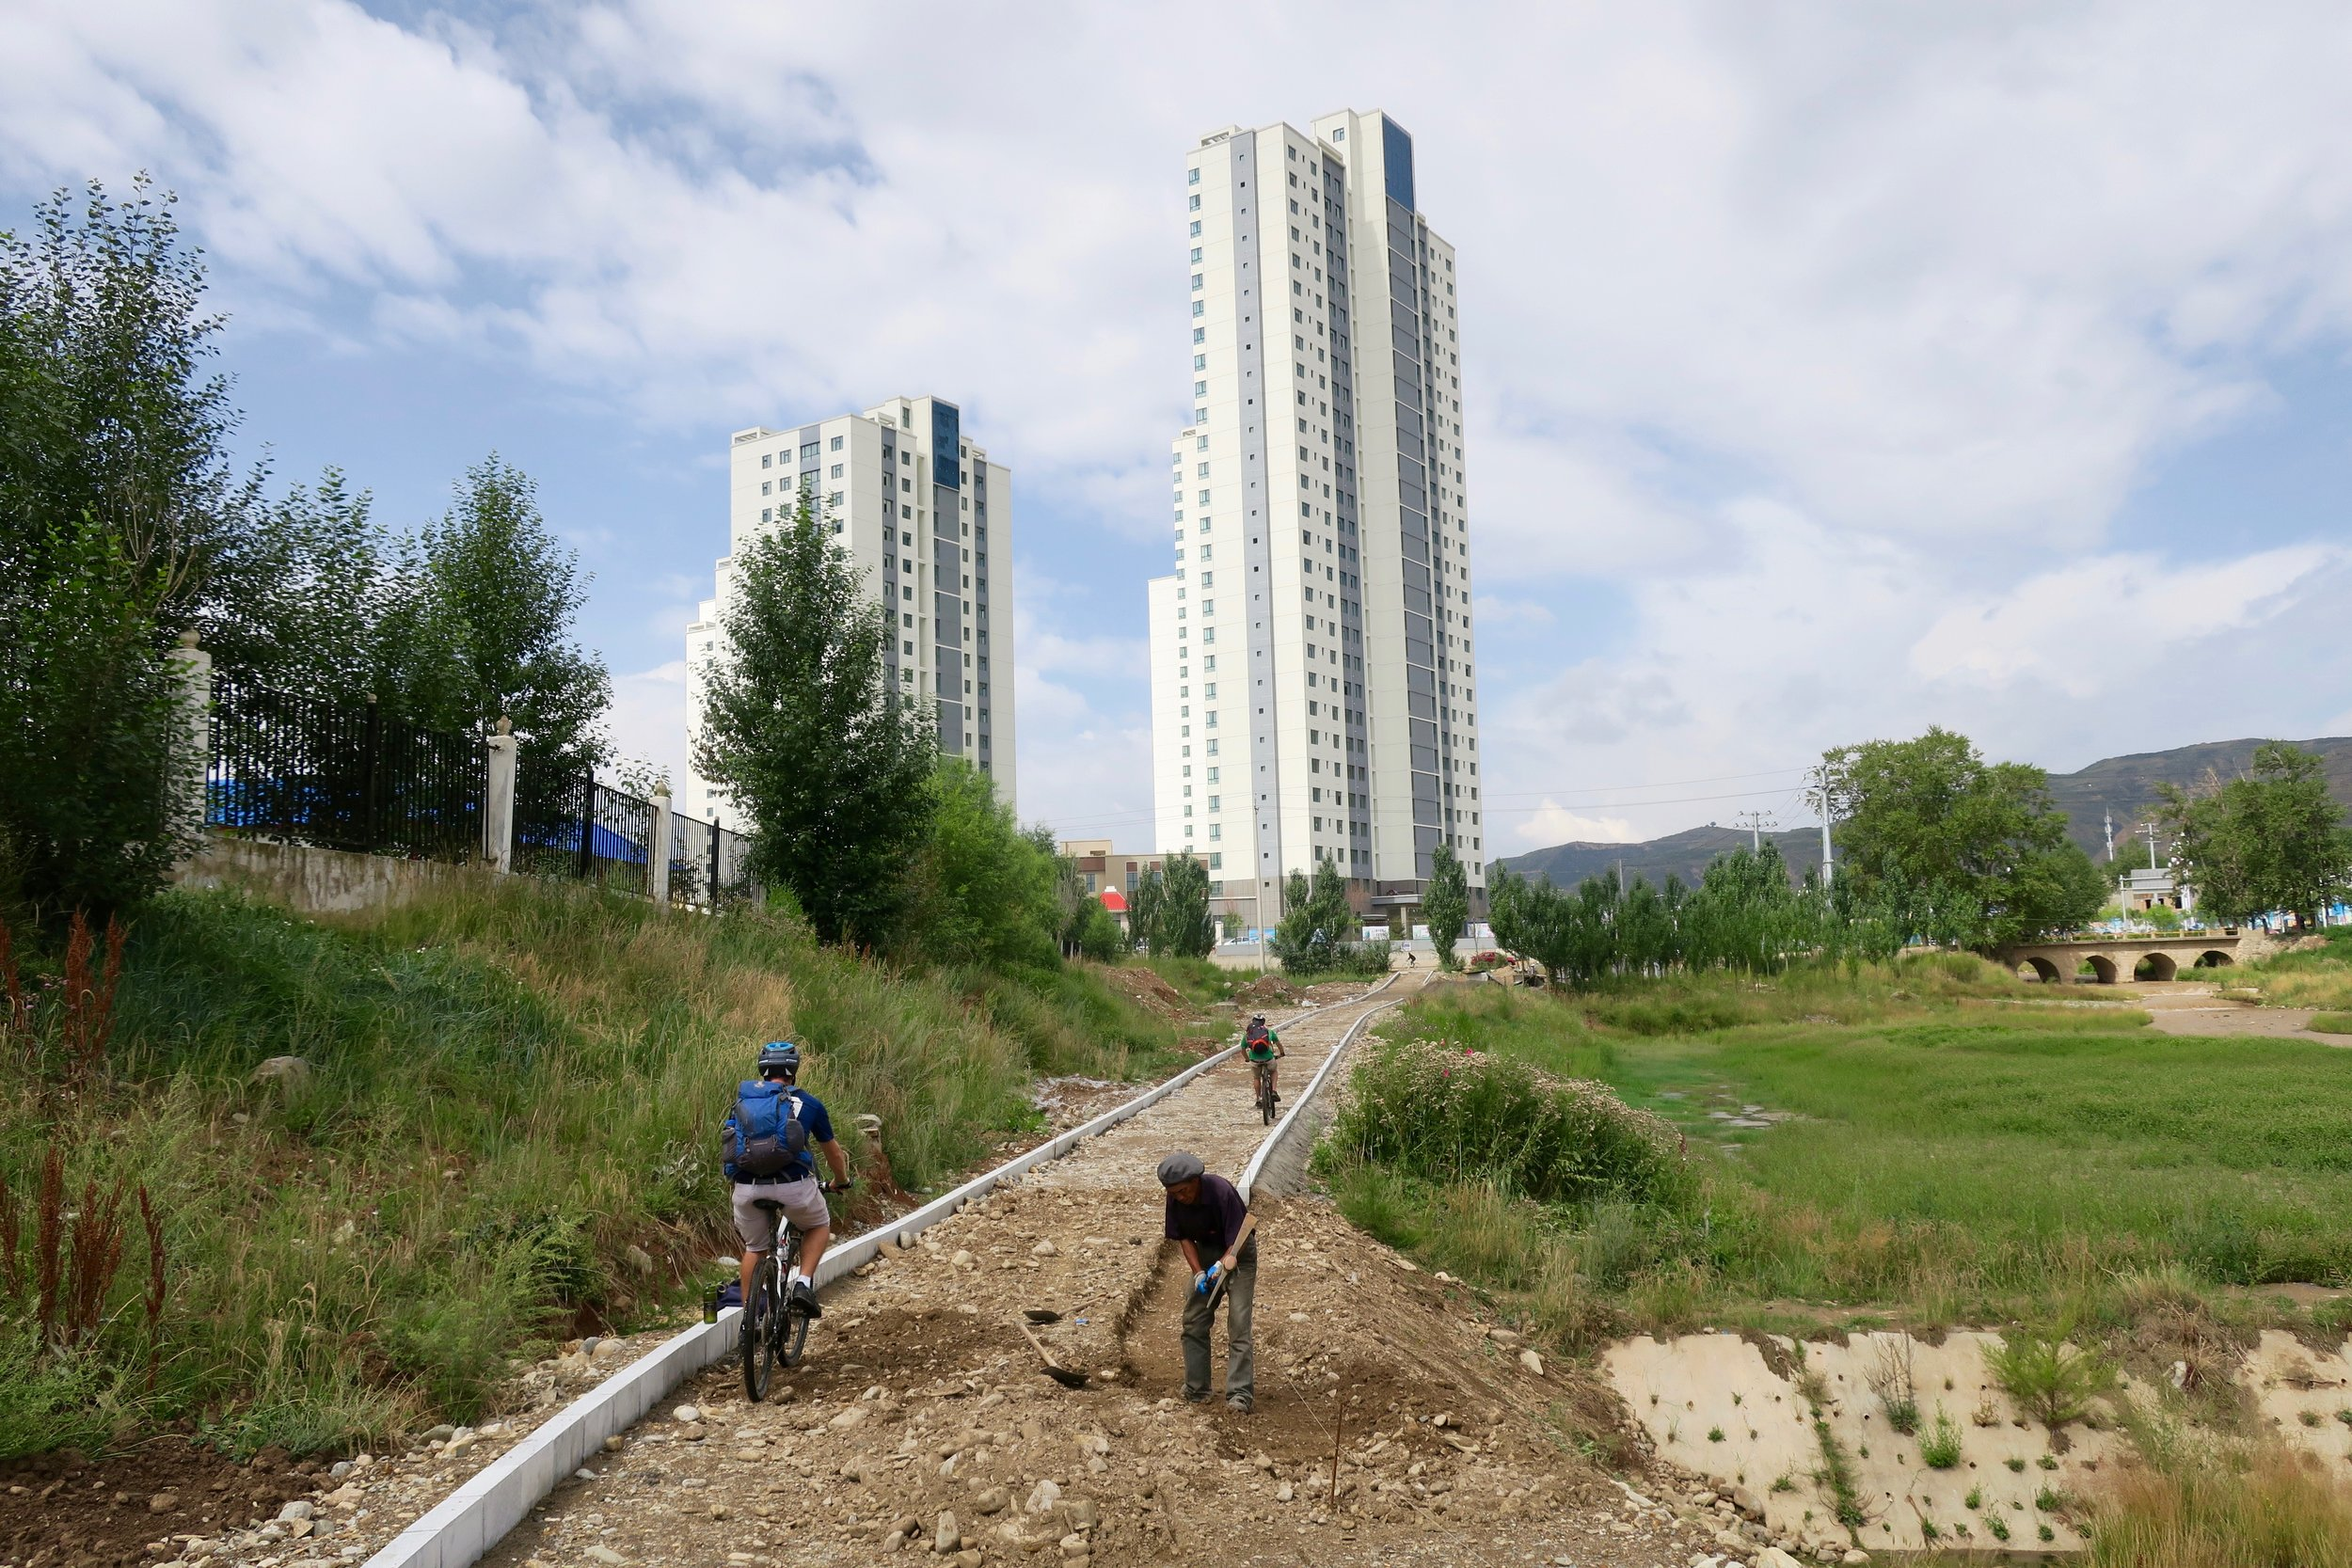 After the bikes were built, we headed into the city of Xining. The city is investing a huge amount of money in infrastructure. Bicycle paths across the city, world class sports fields, silky smooth roads.......